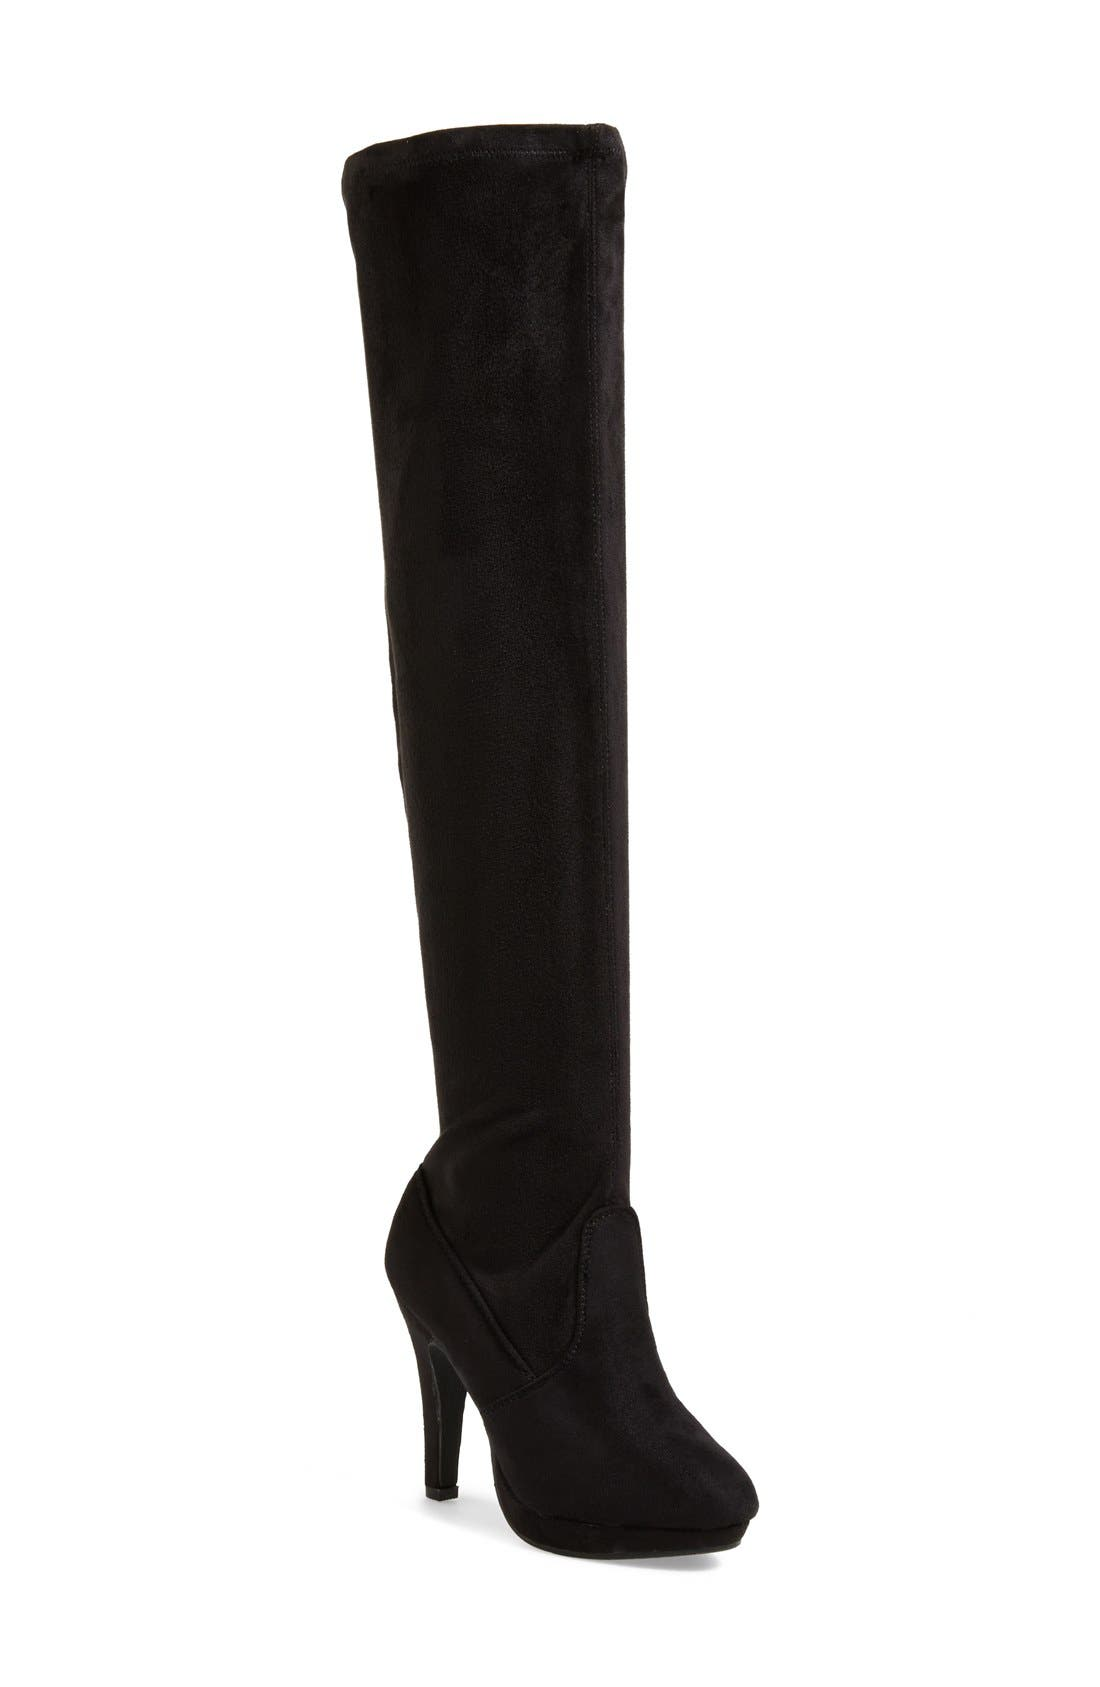 REPORT 'Nadya' Over The Knee Boot,                             Main thumbnail 1, color,                             Black